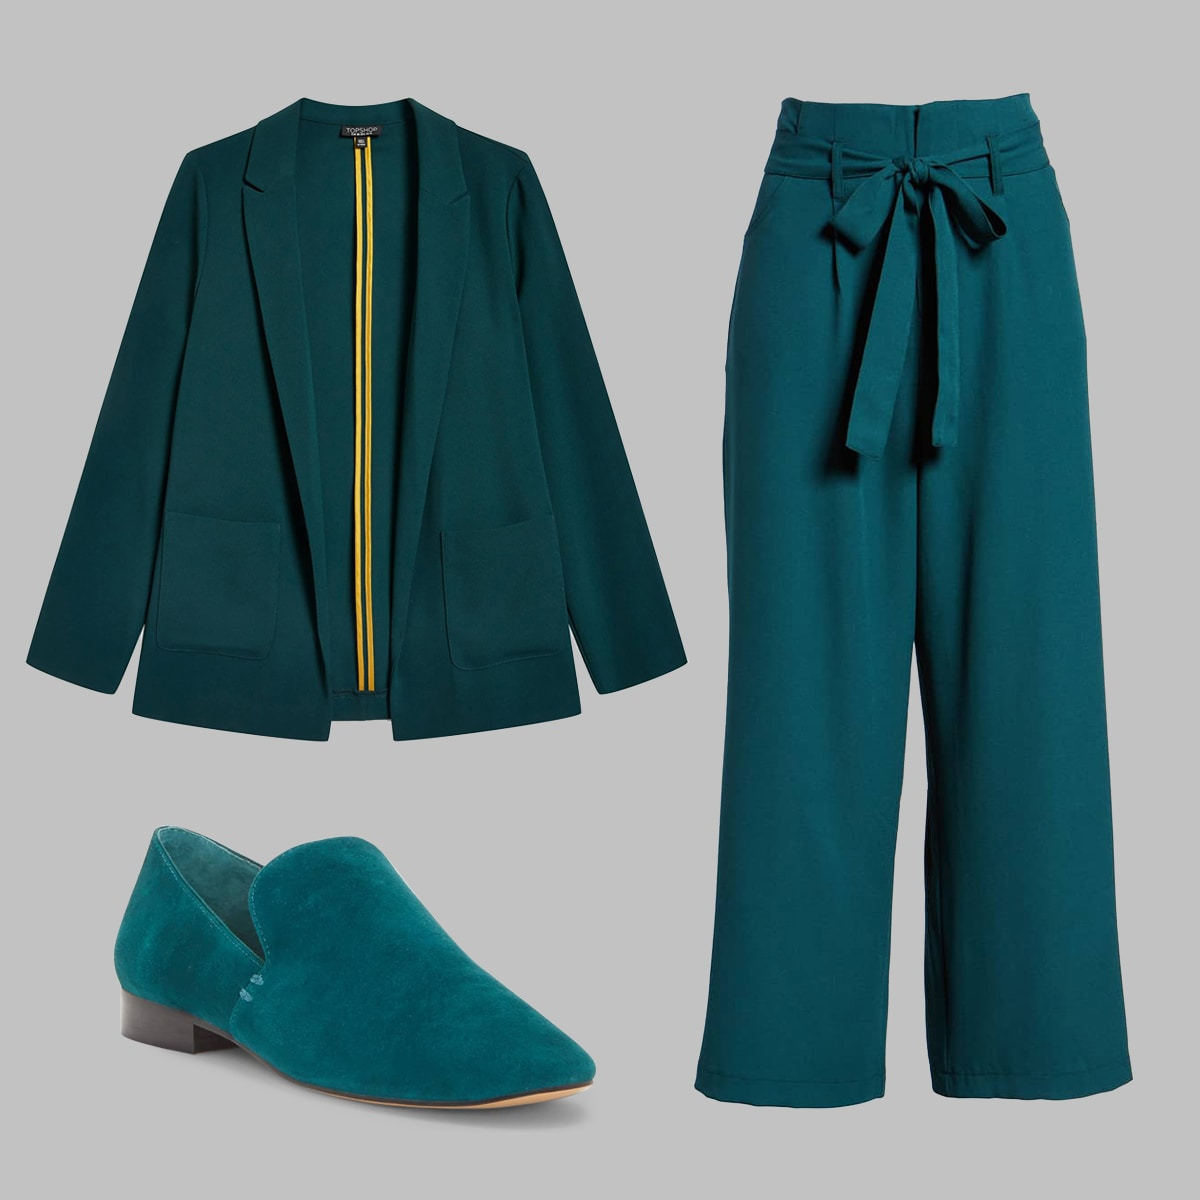 Teal blazer, woven pants, and loafer